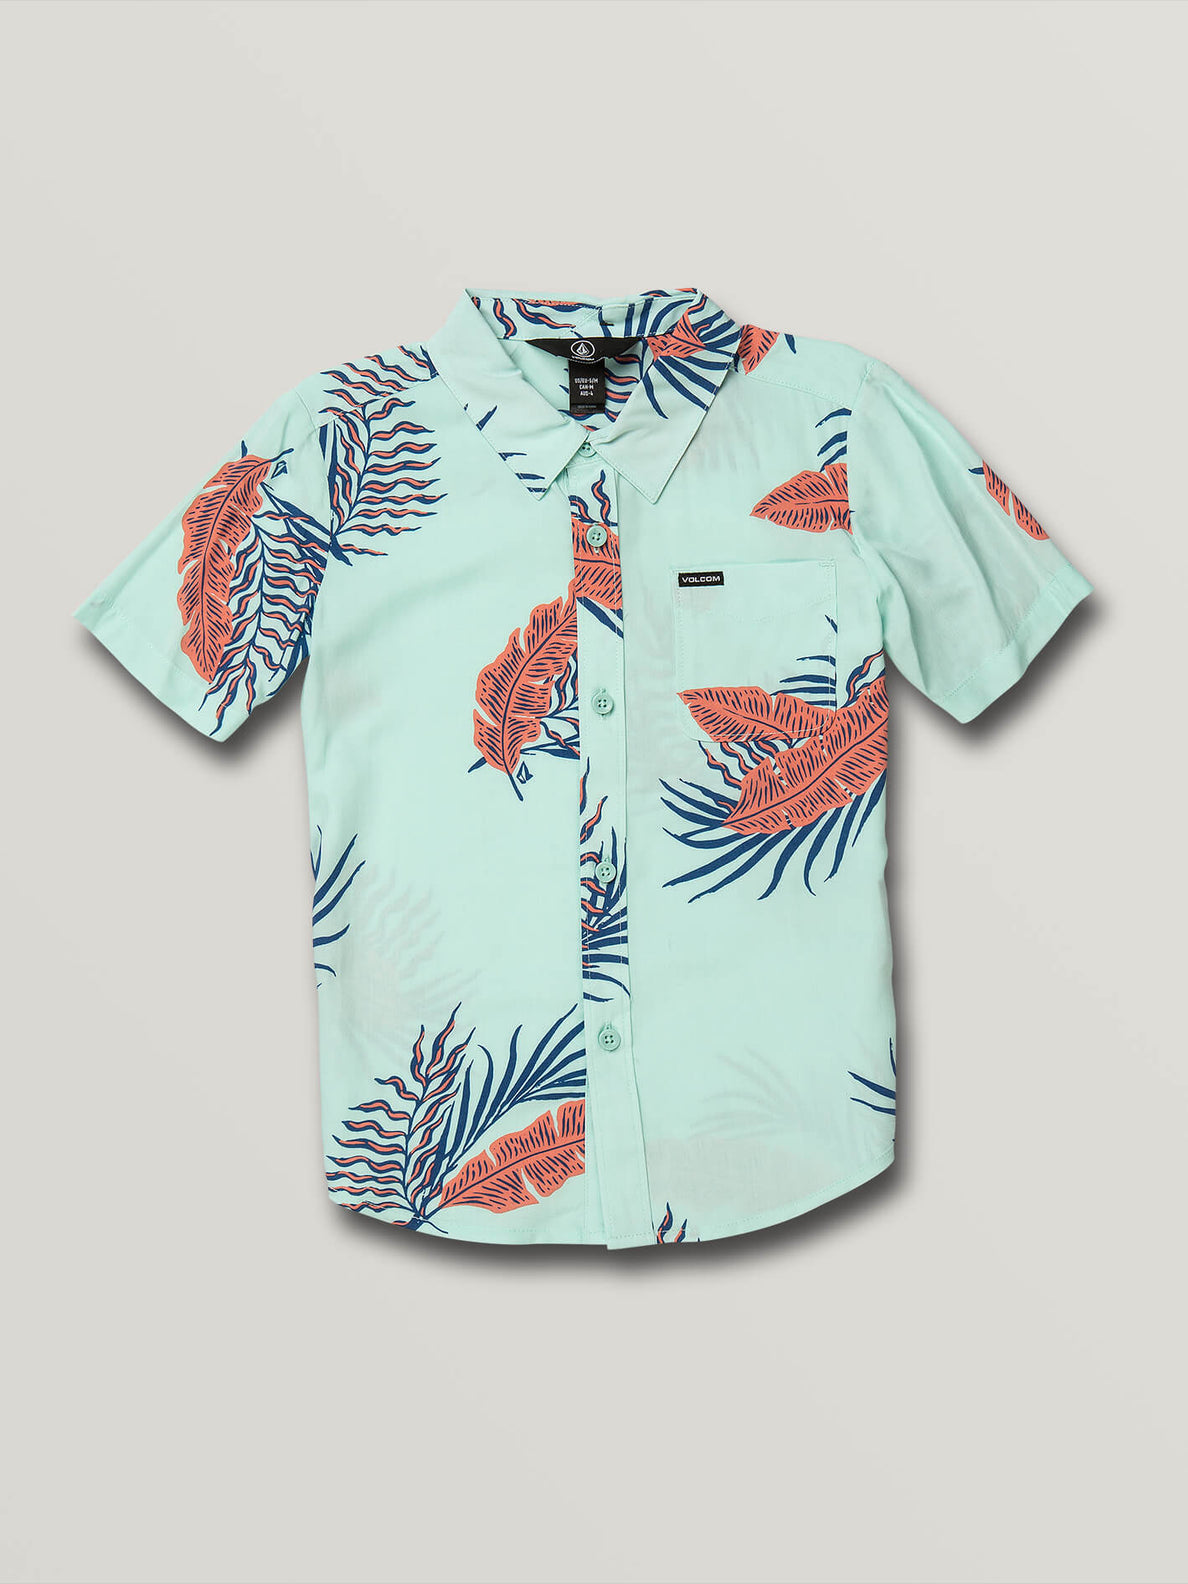 Bermuda S/s Ly Resin Blue (Y0412006_RES) [F]